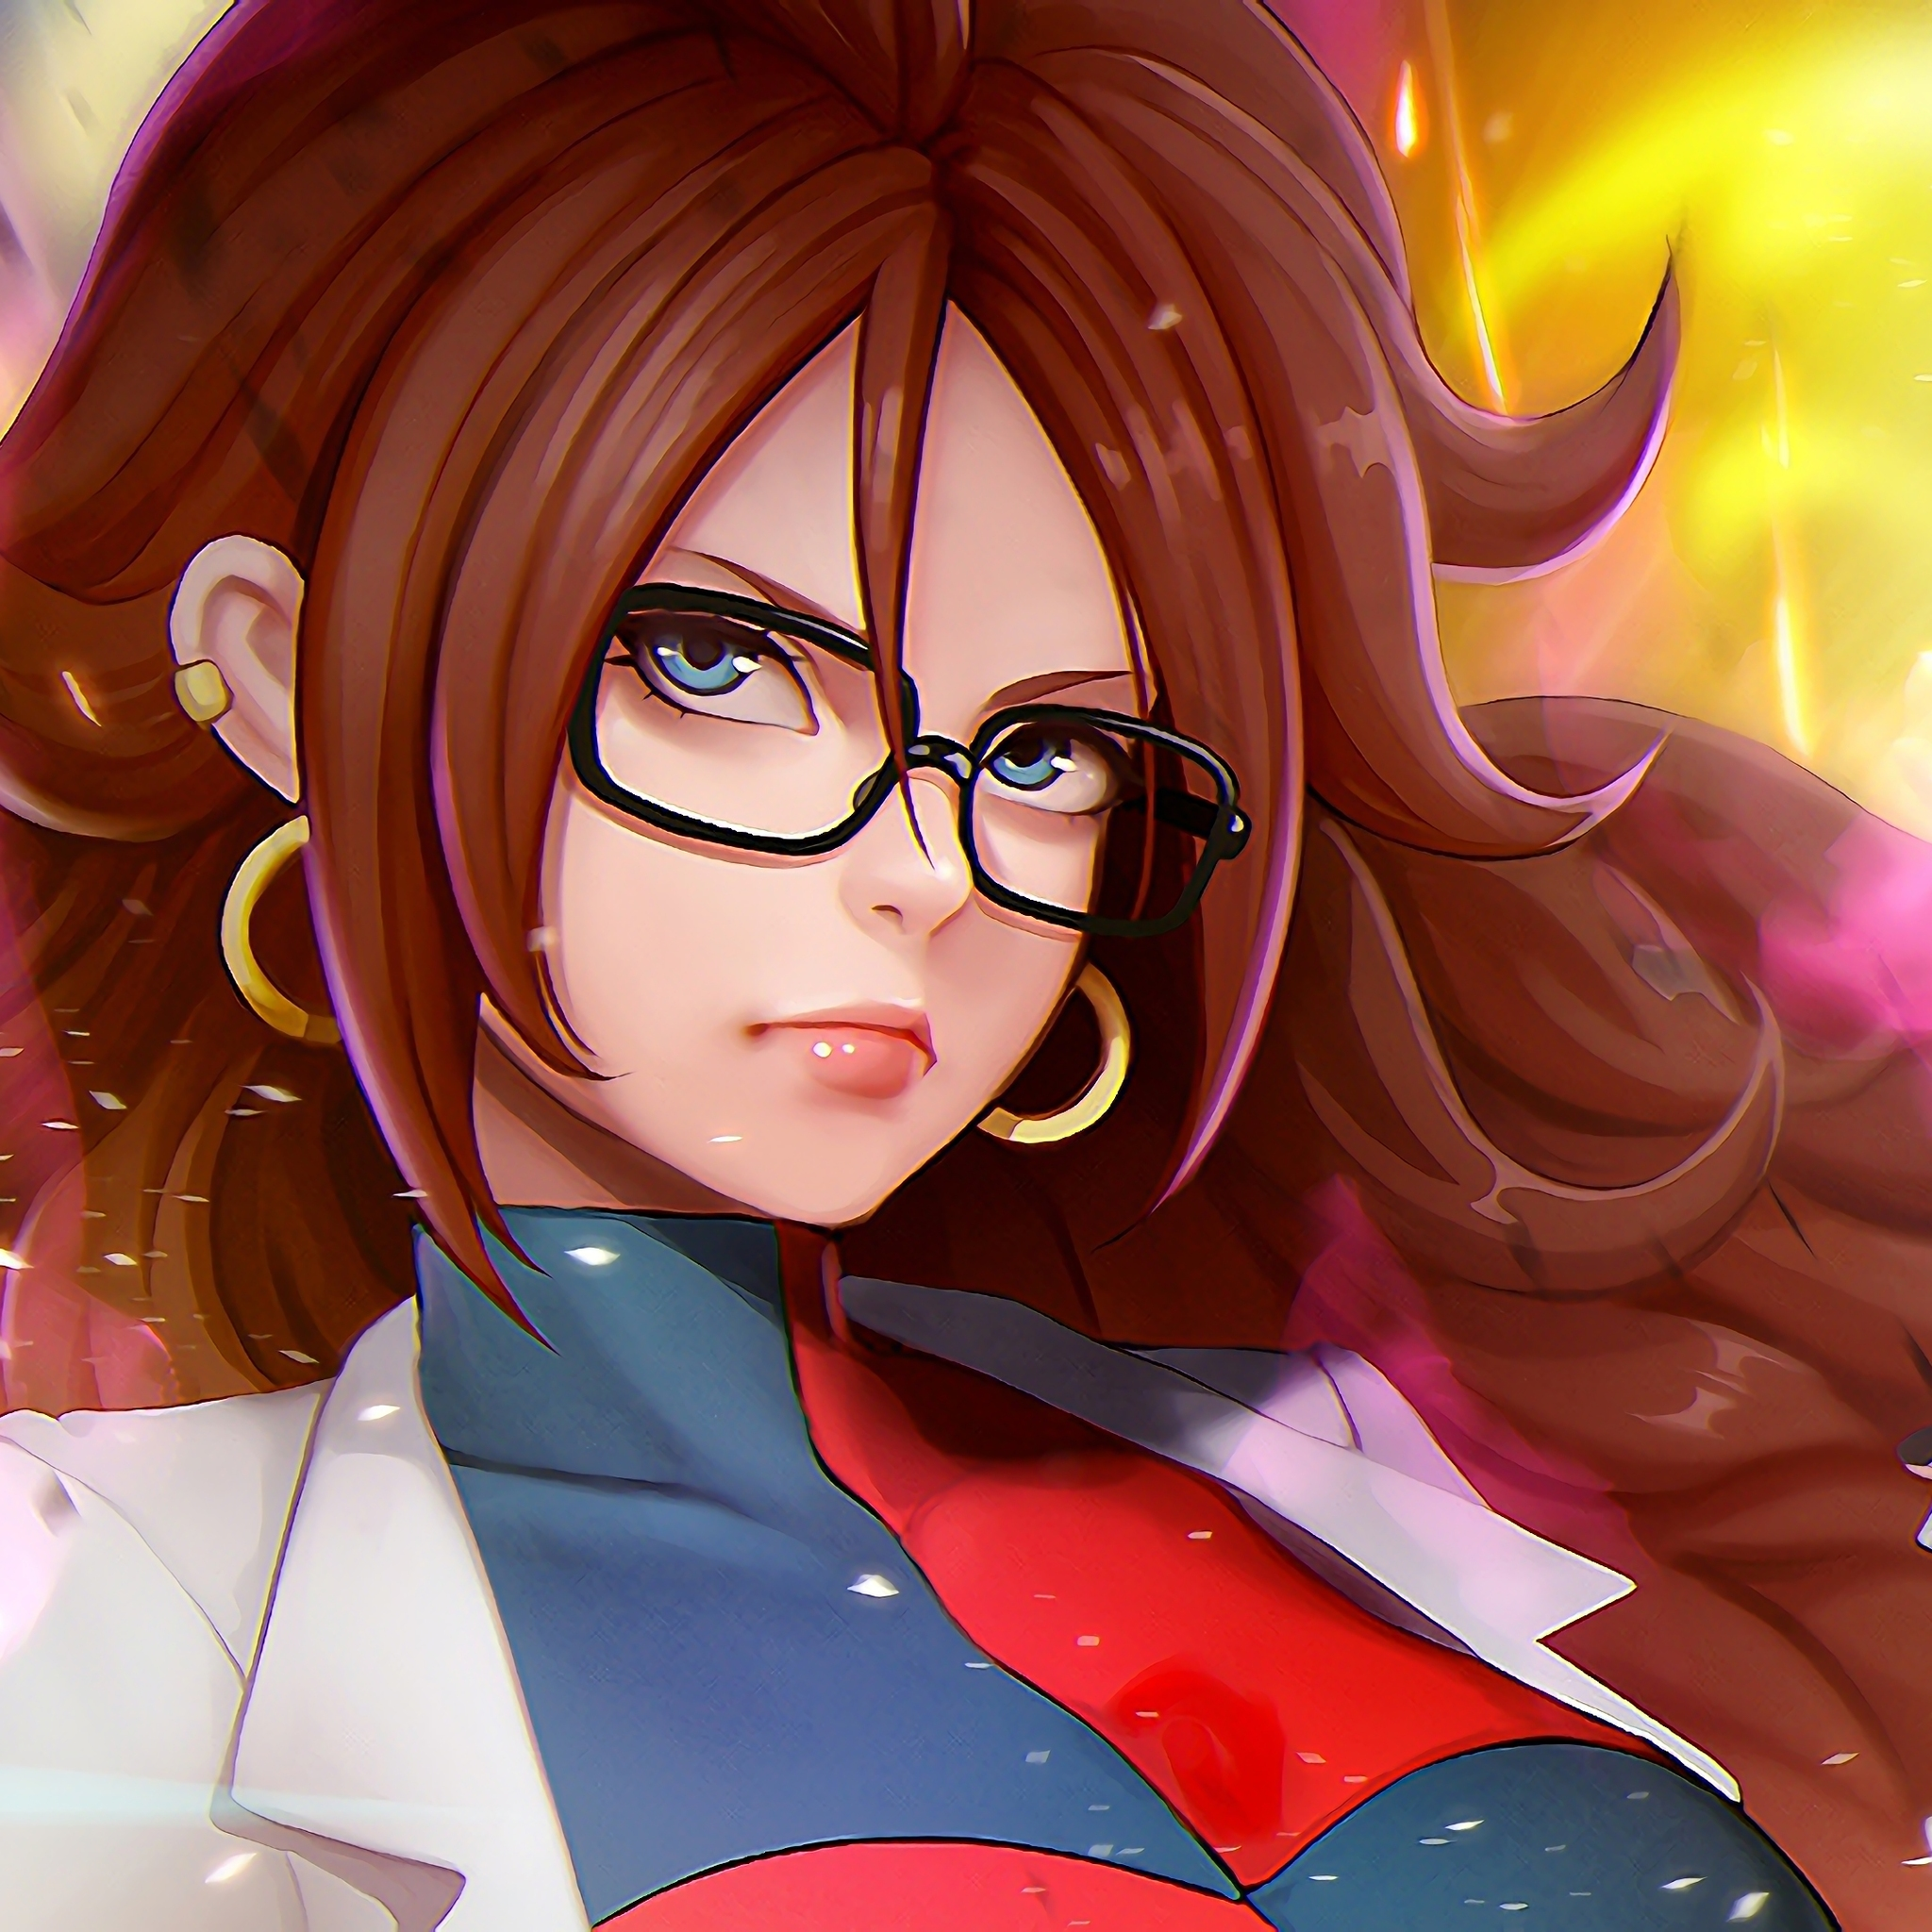 2048x2048 android 21 dragon ball fighter z ipad air hd 4k - Dragon ball z 21 ...